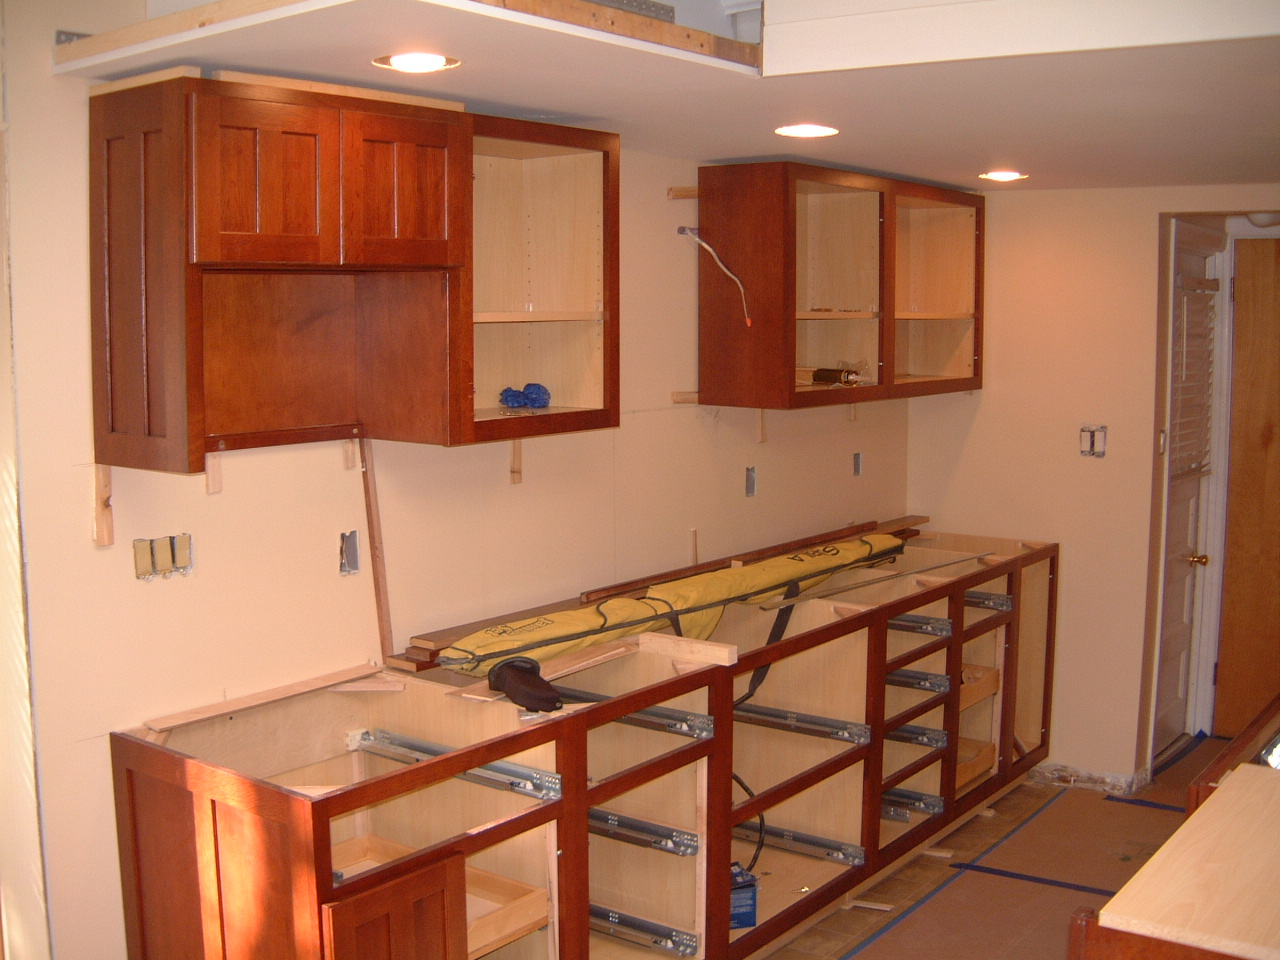 Springfield KitchenCabinet InstallRemodeling Designs Inc